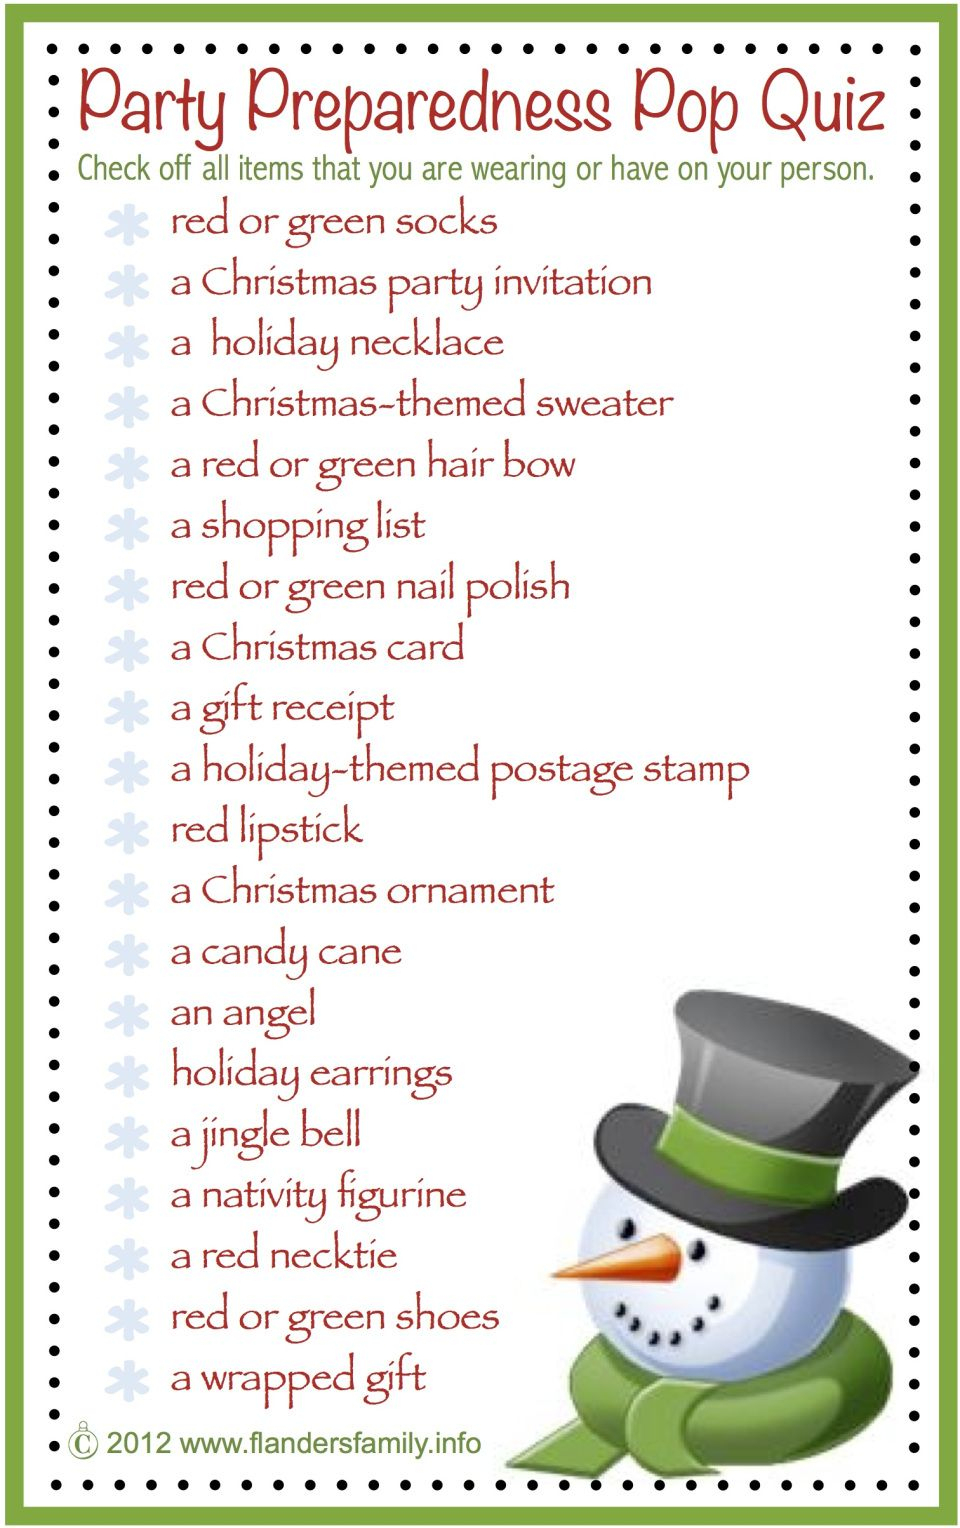 This Site Has Lots Of Free Printable Party Games And Activities For - Free Printable Religious Christmas Games